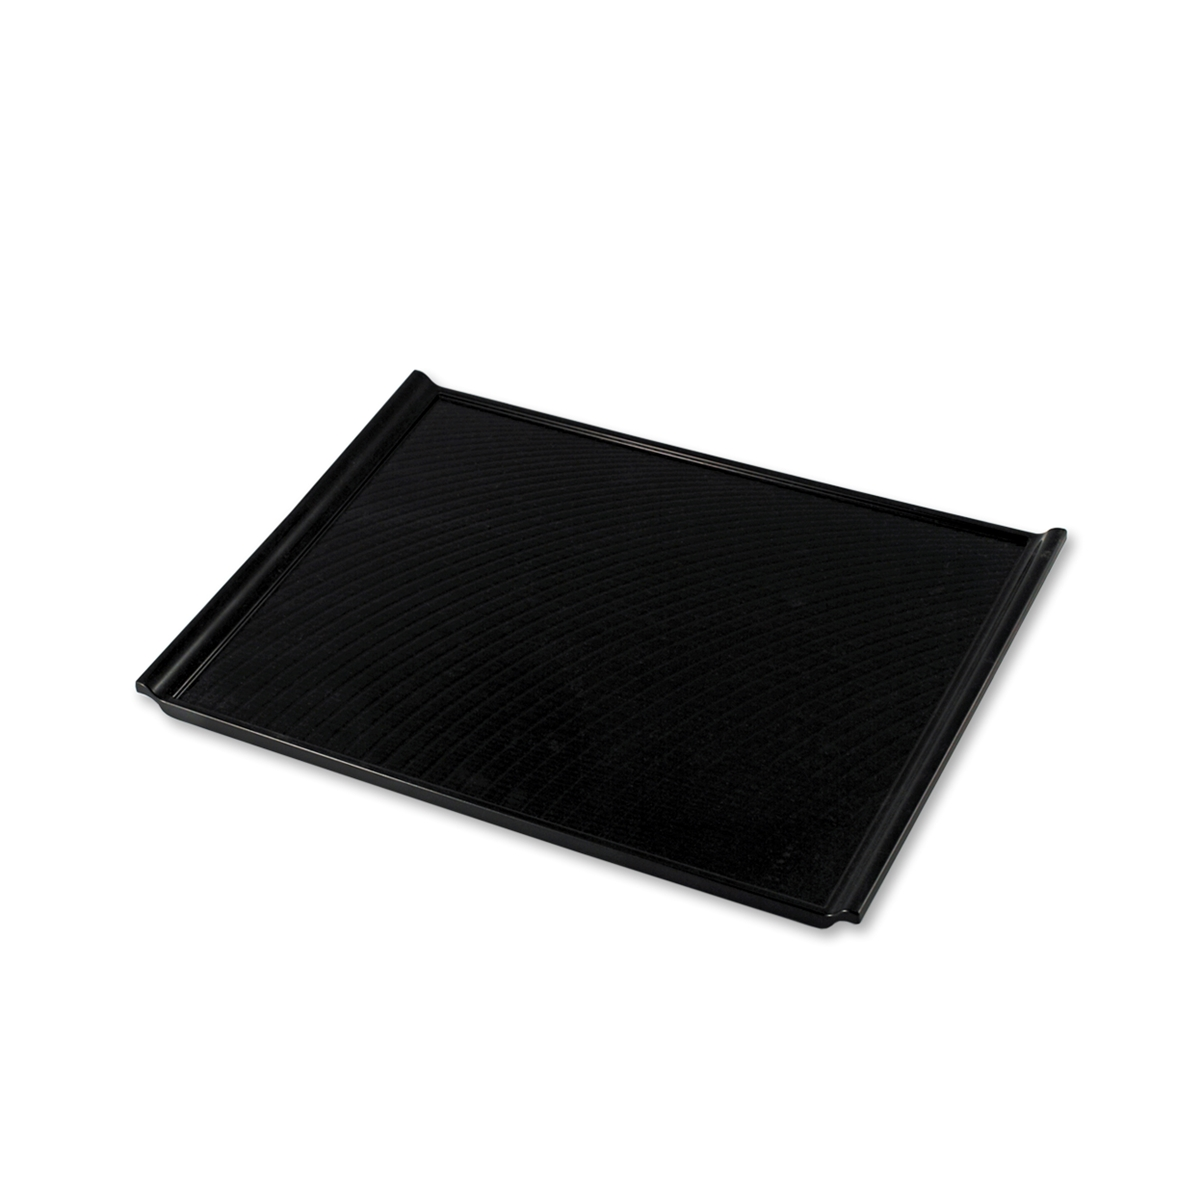 Black Serving Tray Non Slip Black Rectangular Serving Tray With Handles 15 55